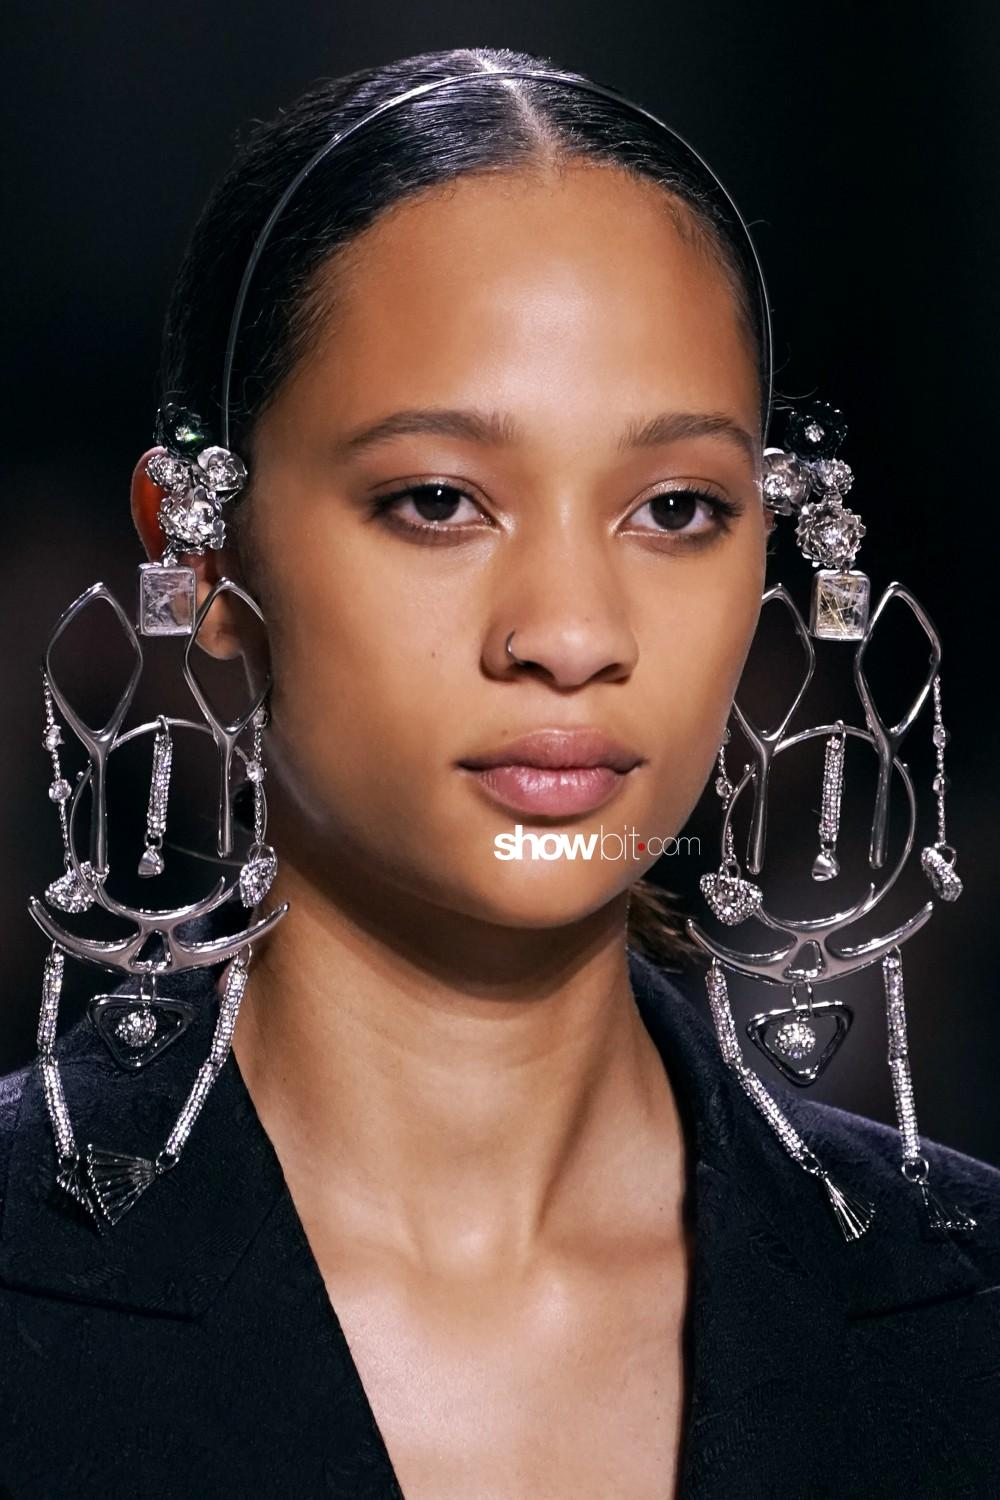 Givenchy beauty runway Haute Couture Fall Winter 2019 2020 Paris